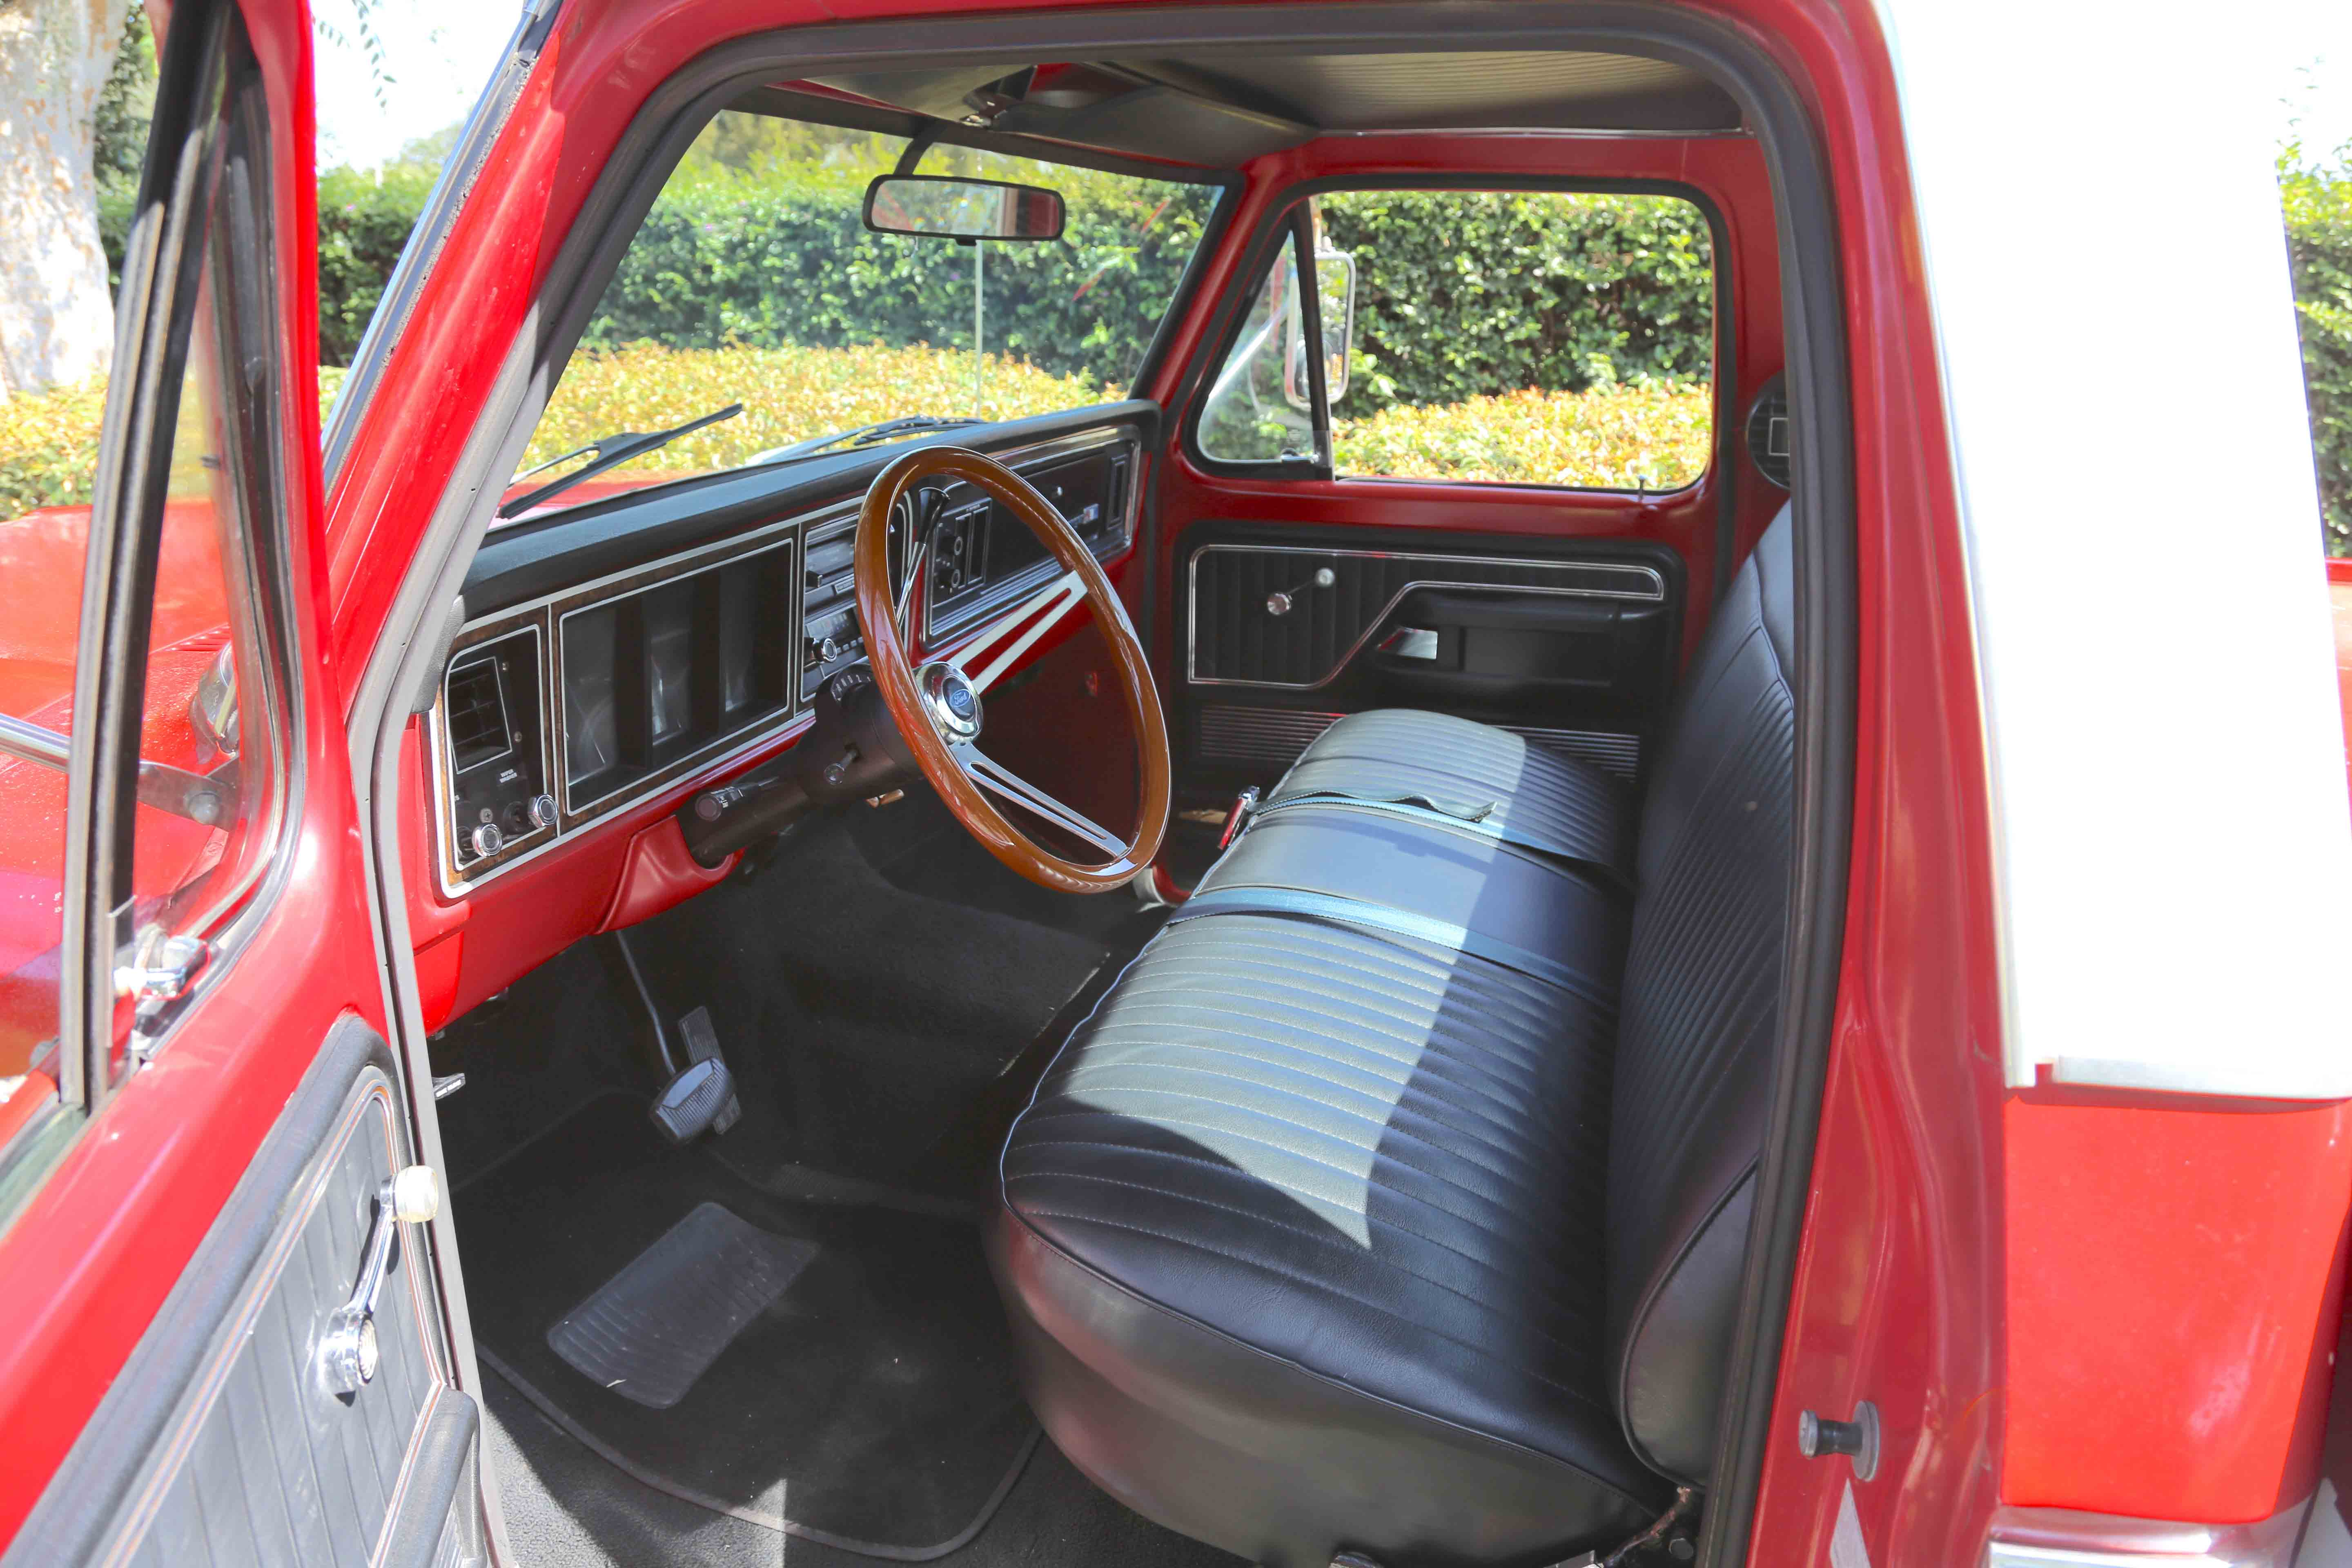 The Ranger XLT interior is top of the line, and it was approaching Cadillac status by the standards of the day. The seat upholstery and wood steering wheel are not stock but blend in nicely with this well-cared-for F350.